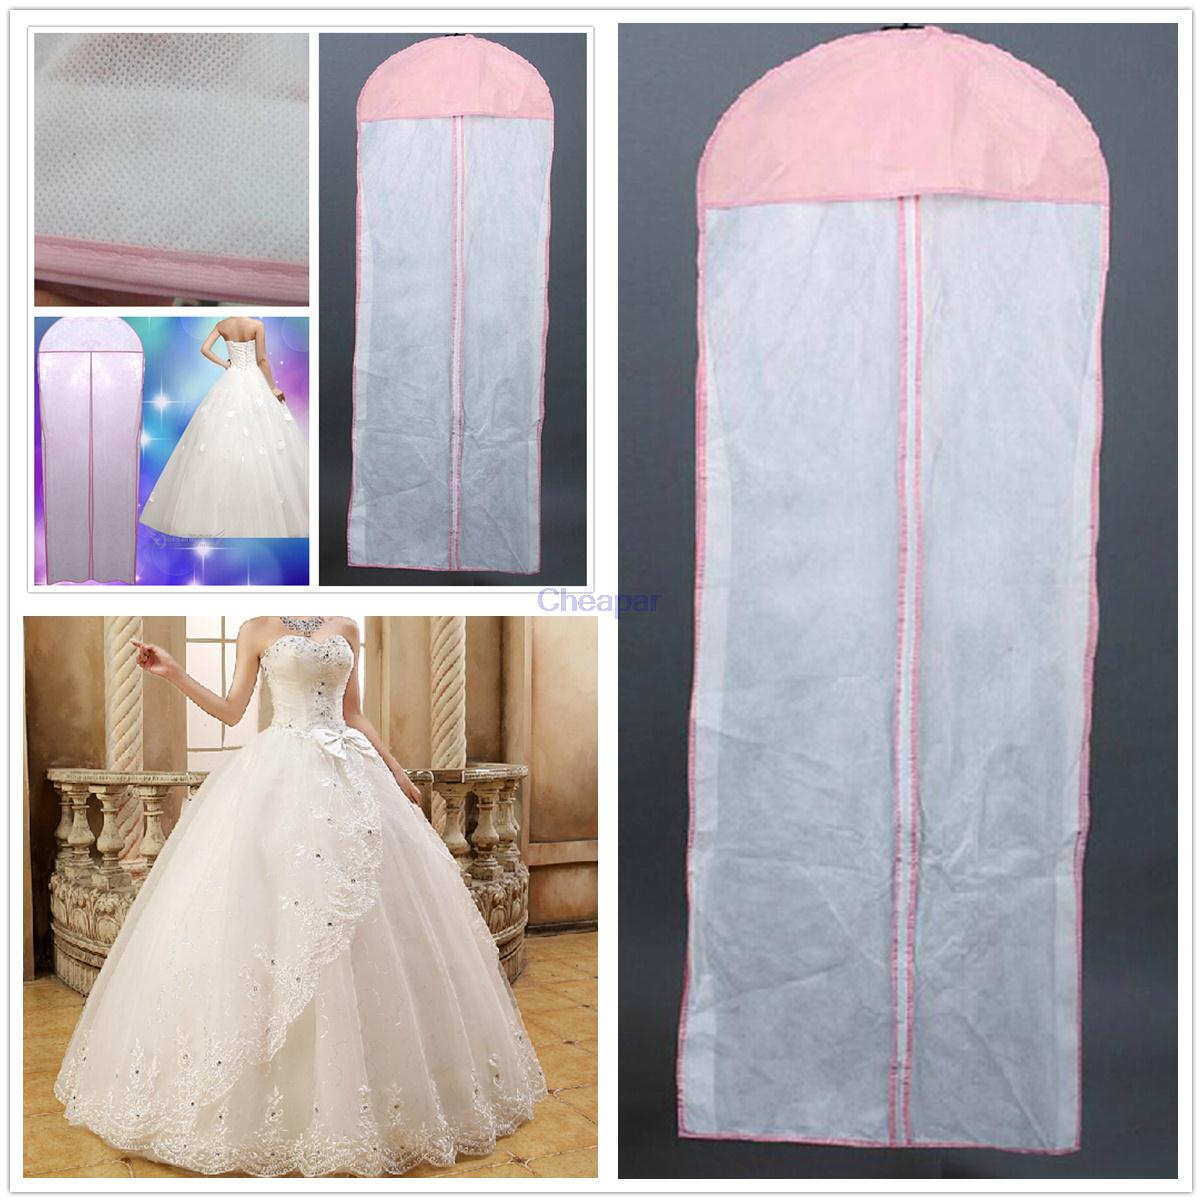 New White Breathable Wedding Prom Dress Bridal Gown Garment Hanging Storage Bag Clothes Dust Cover Zip Cane In Bags From Home Garden On